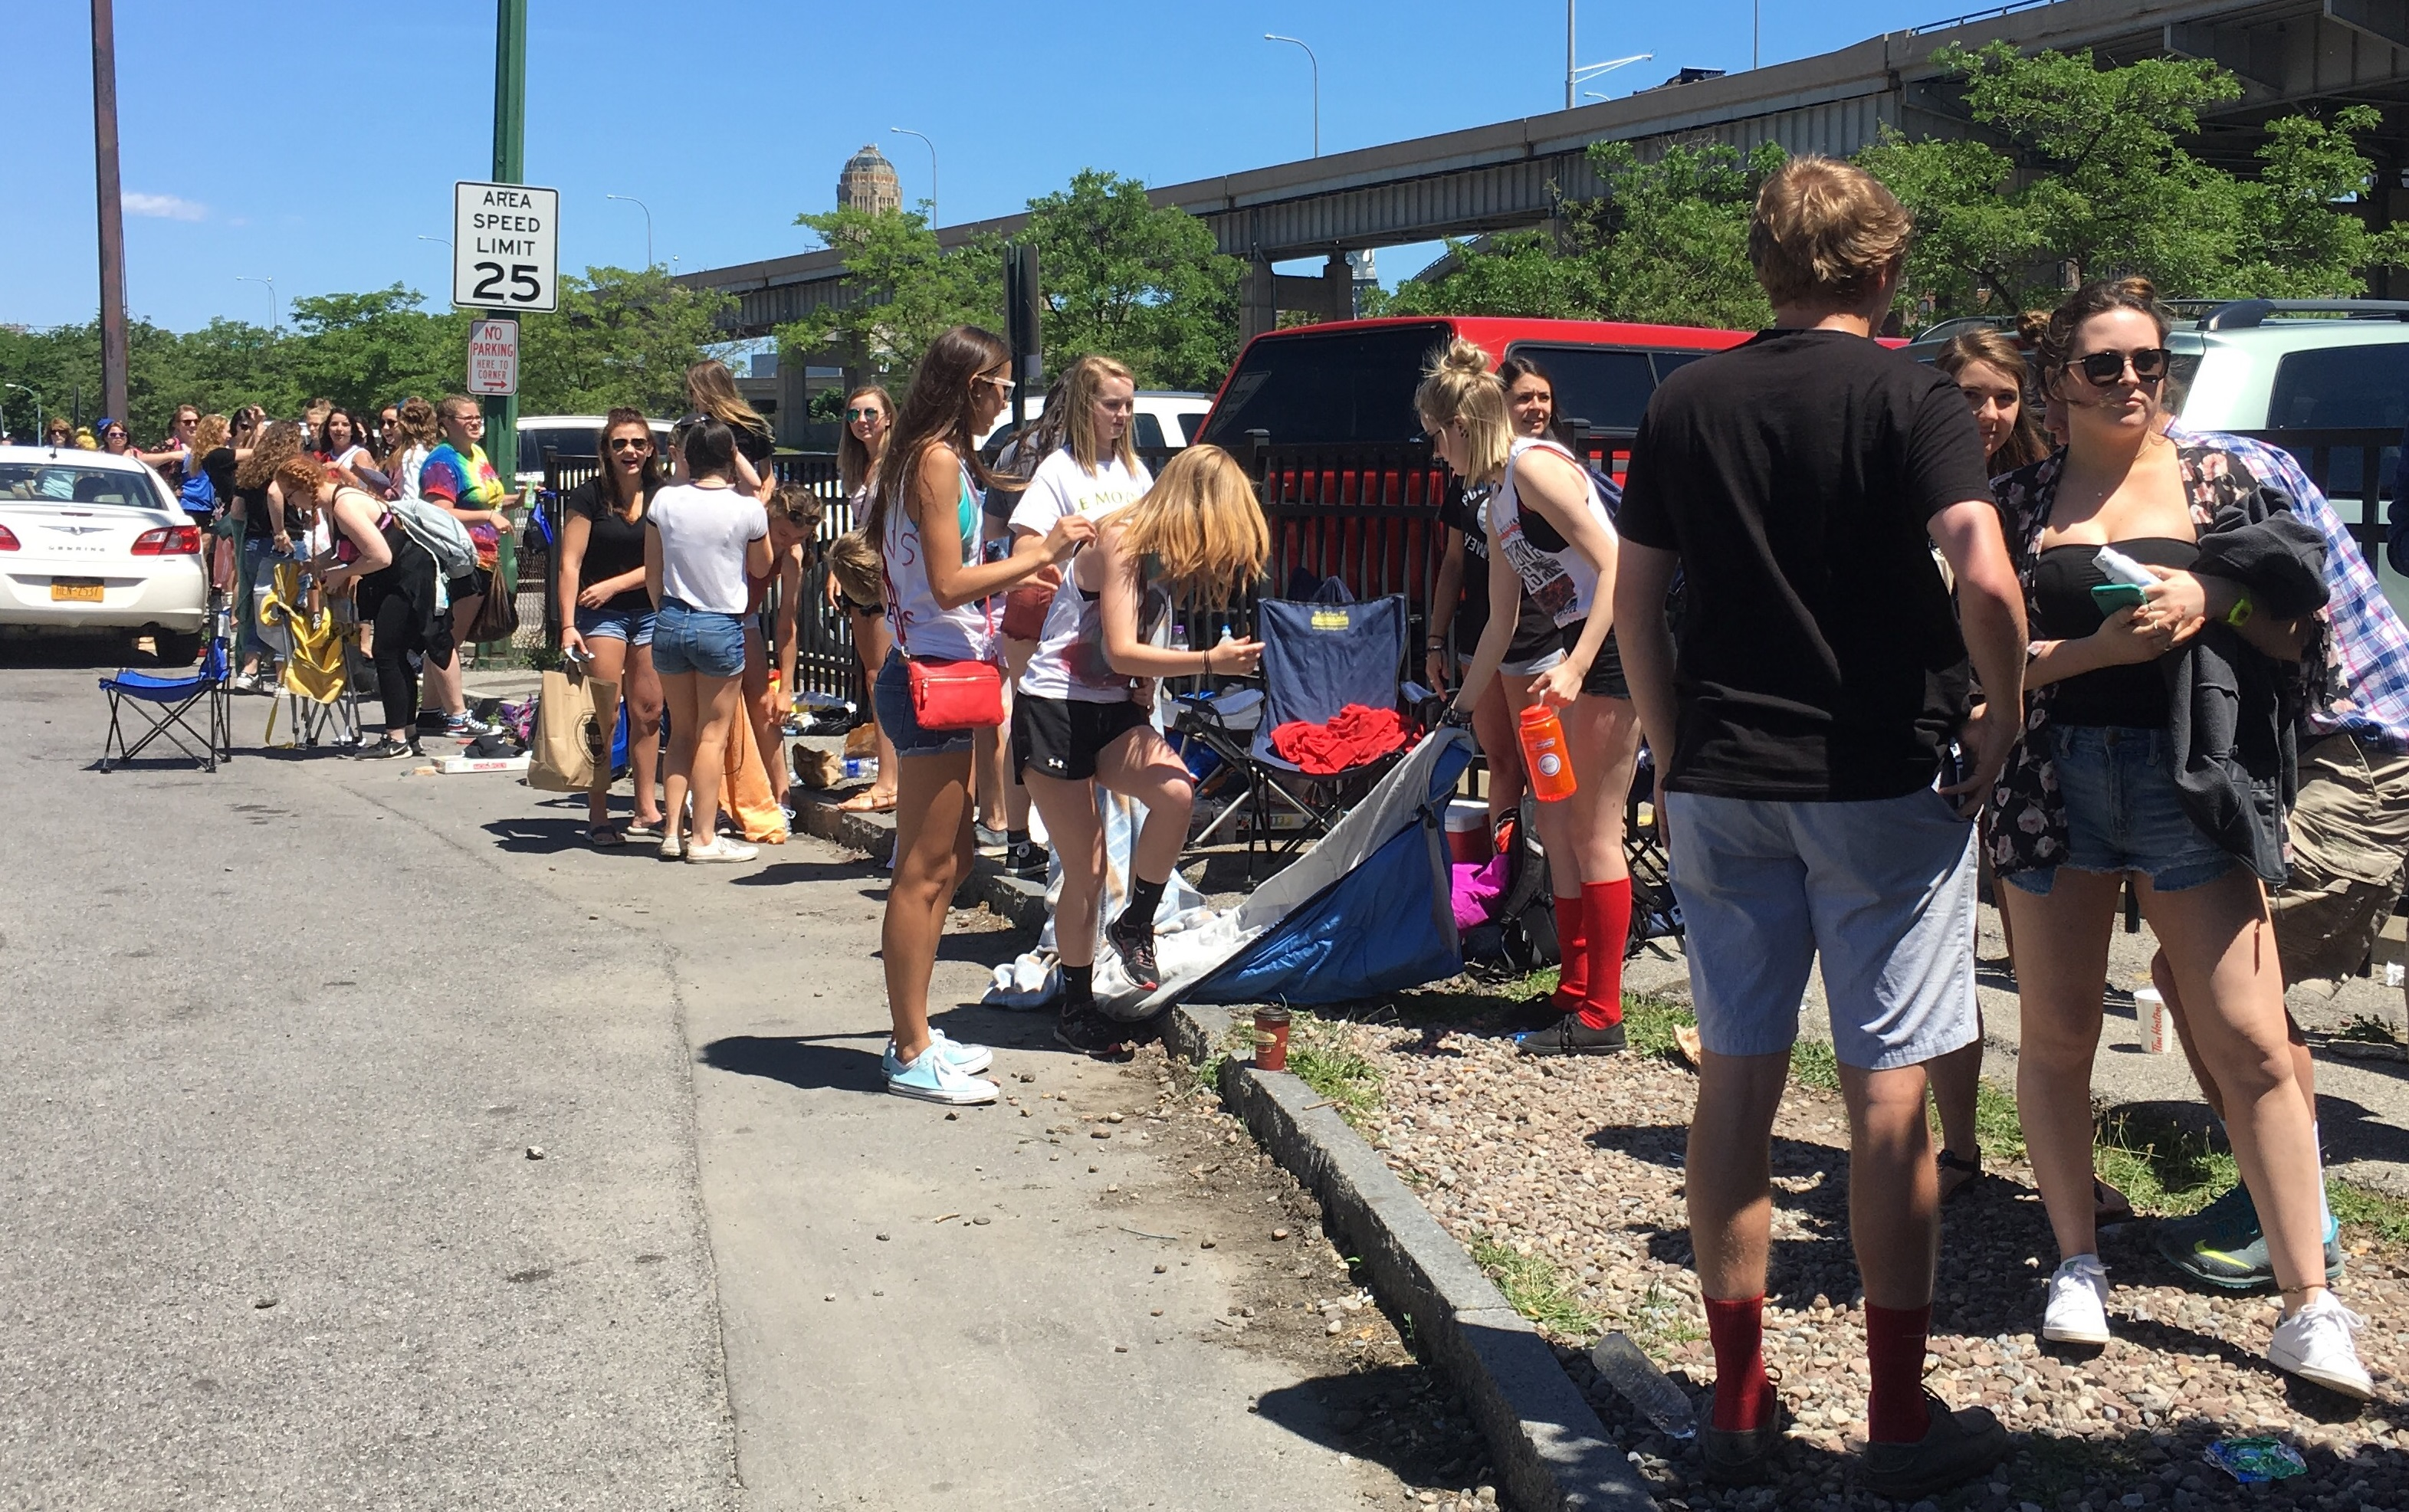 Fans started lining up at 8 a.m. Monday for Tuesday's sold-out Twenty One Pilots concert at Canalside. (Alyssa Fisher/Buffalo News)